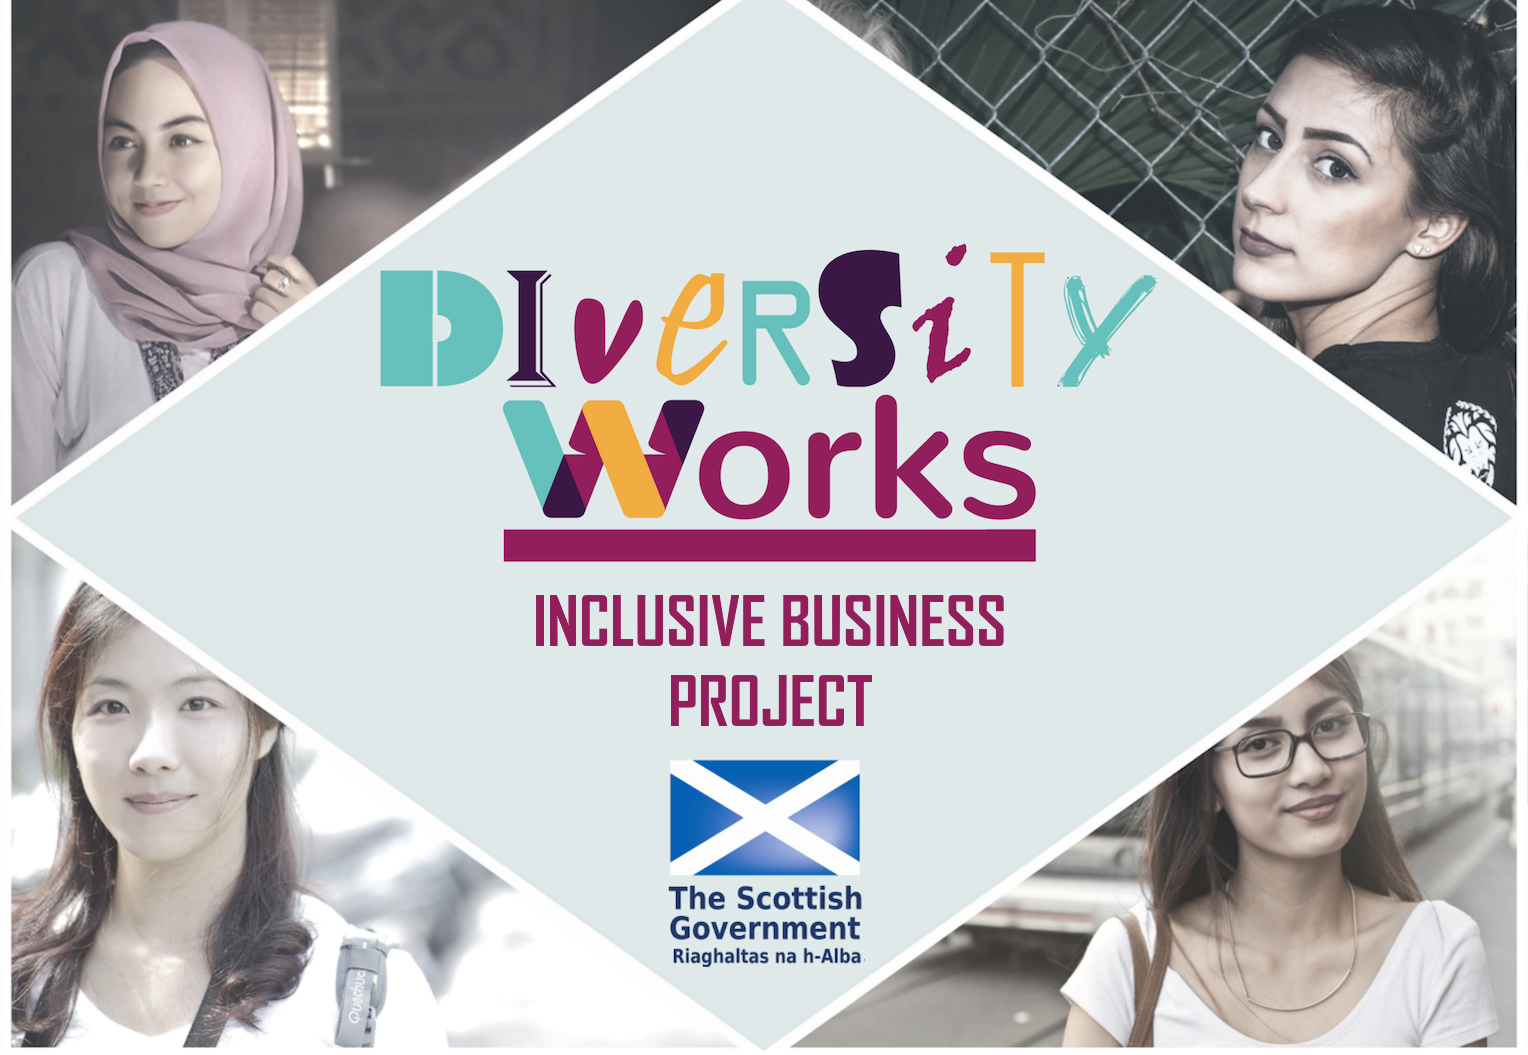 ADOPT.AN.INTERN.DIVERSITY.WORKS.SCOTTISH.GOVERNMENT.MINORITY.ETHNIC.WOMEN.EMPLOYMENT.GRADUATE.RECRUITMENT.JOY.LEWIS.blank.png4general.png